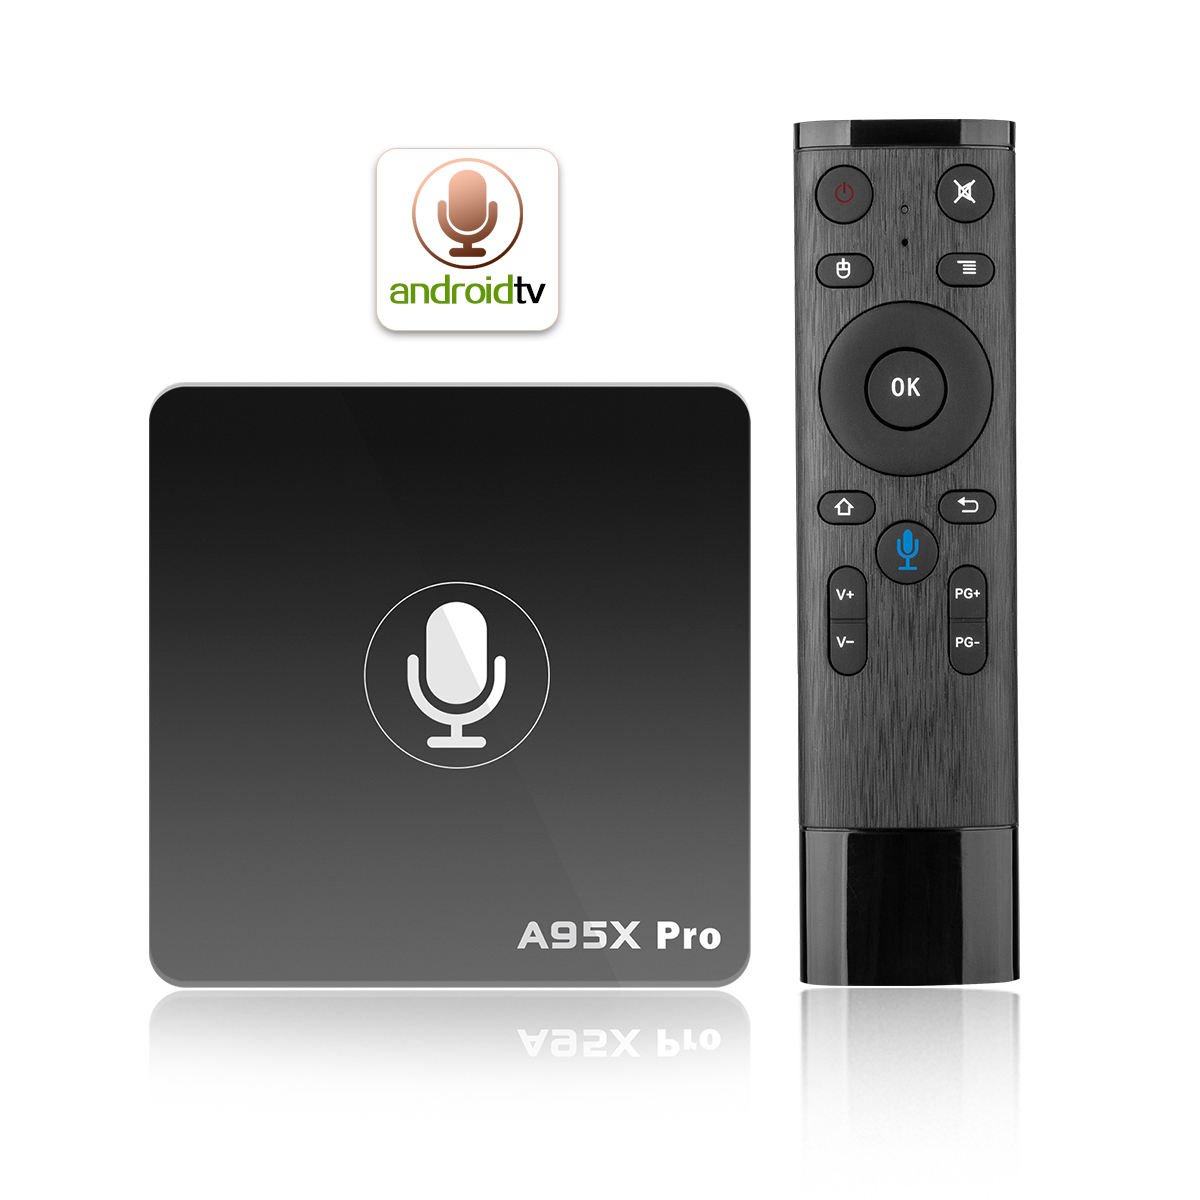 Shizhou Tech S905W Quad Core 2GB 16GB A95X PRO Suara Remote Control <span class=keywords><strong>Android</strong></span> TV 7.1 Kotak ATV